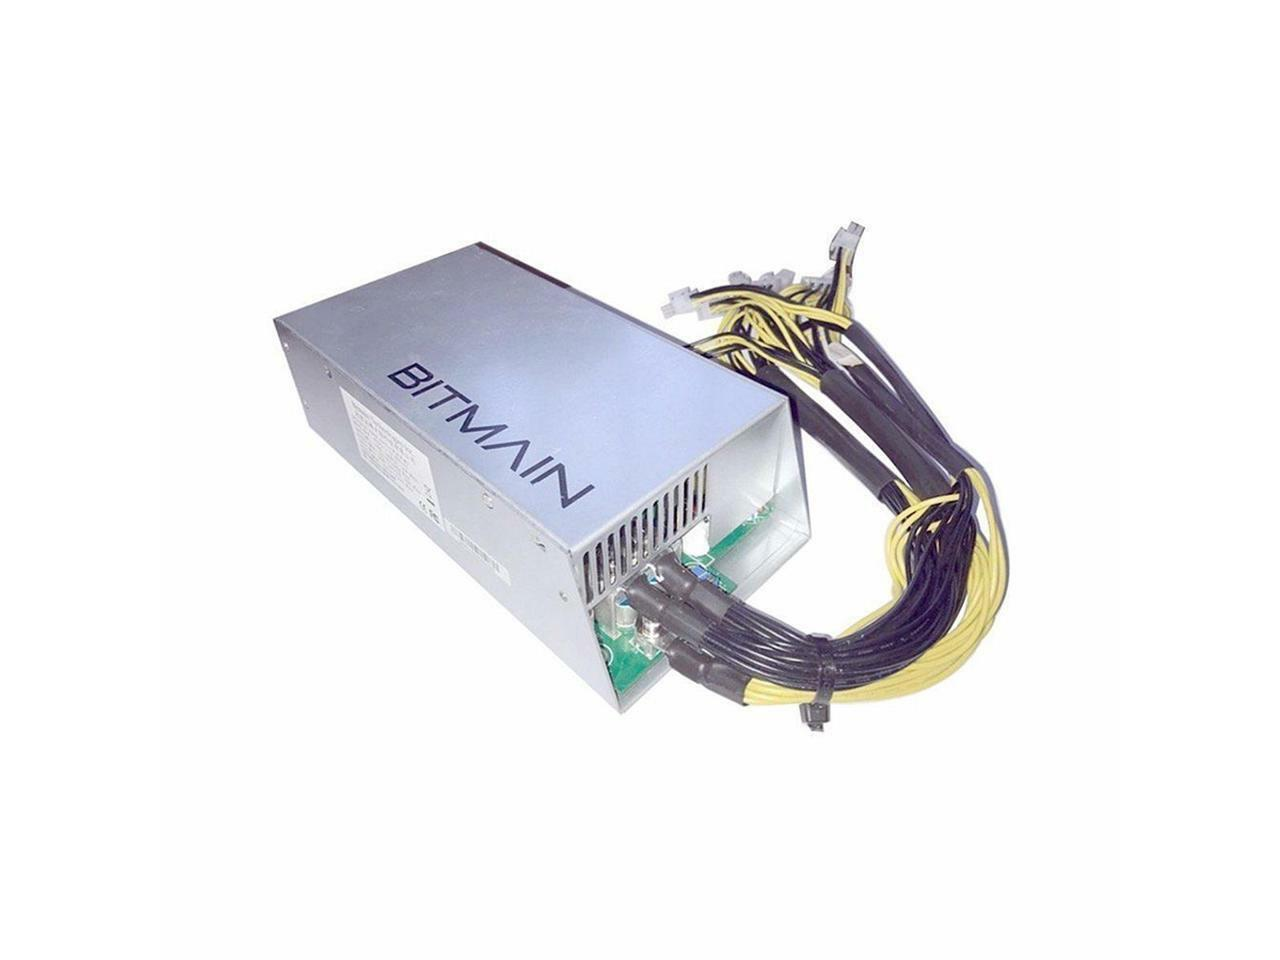 1600W AntMiner APW3++ PSU Power Supply for Antminer Bitcoin S9 S7 L3+ D3 ETH